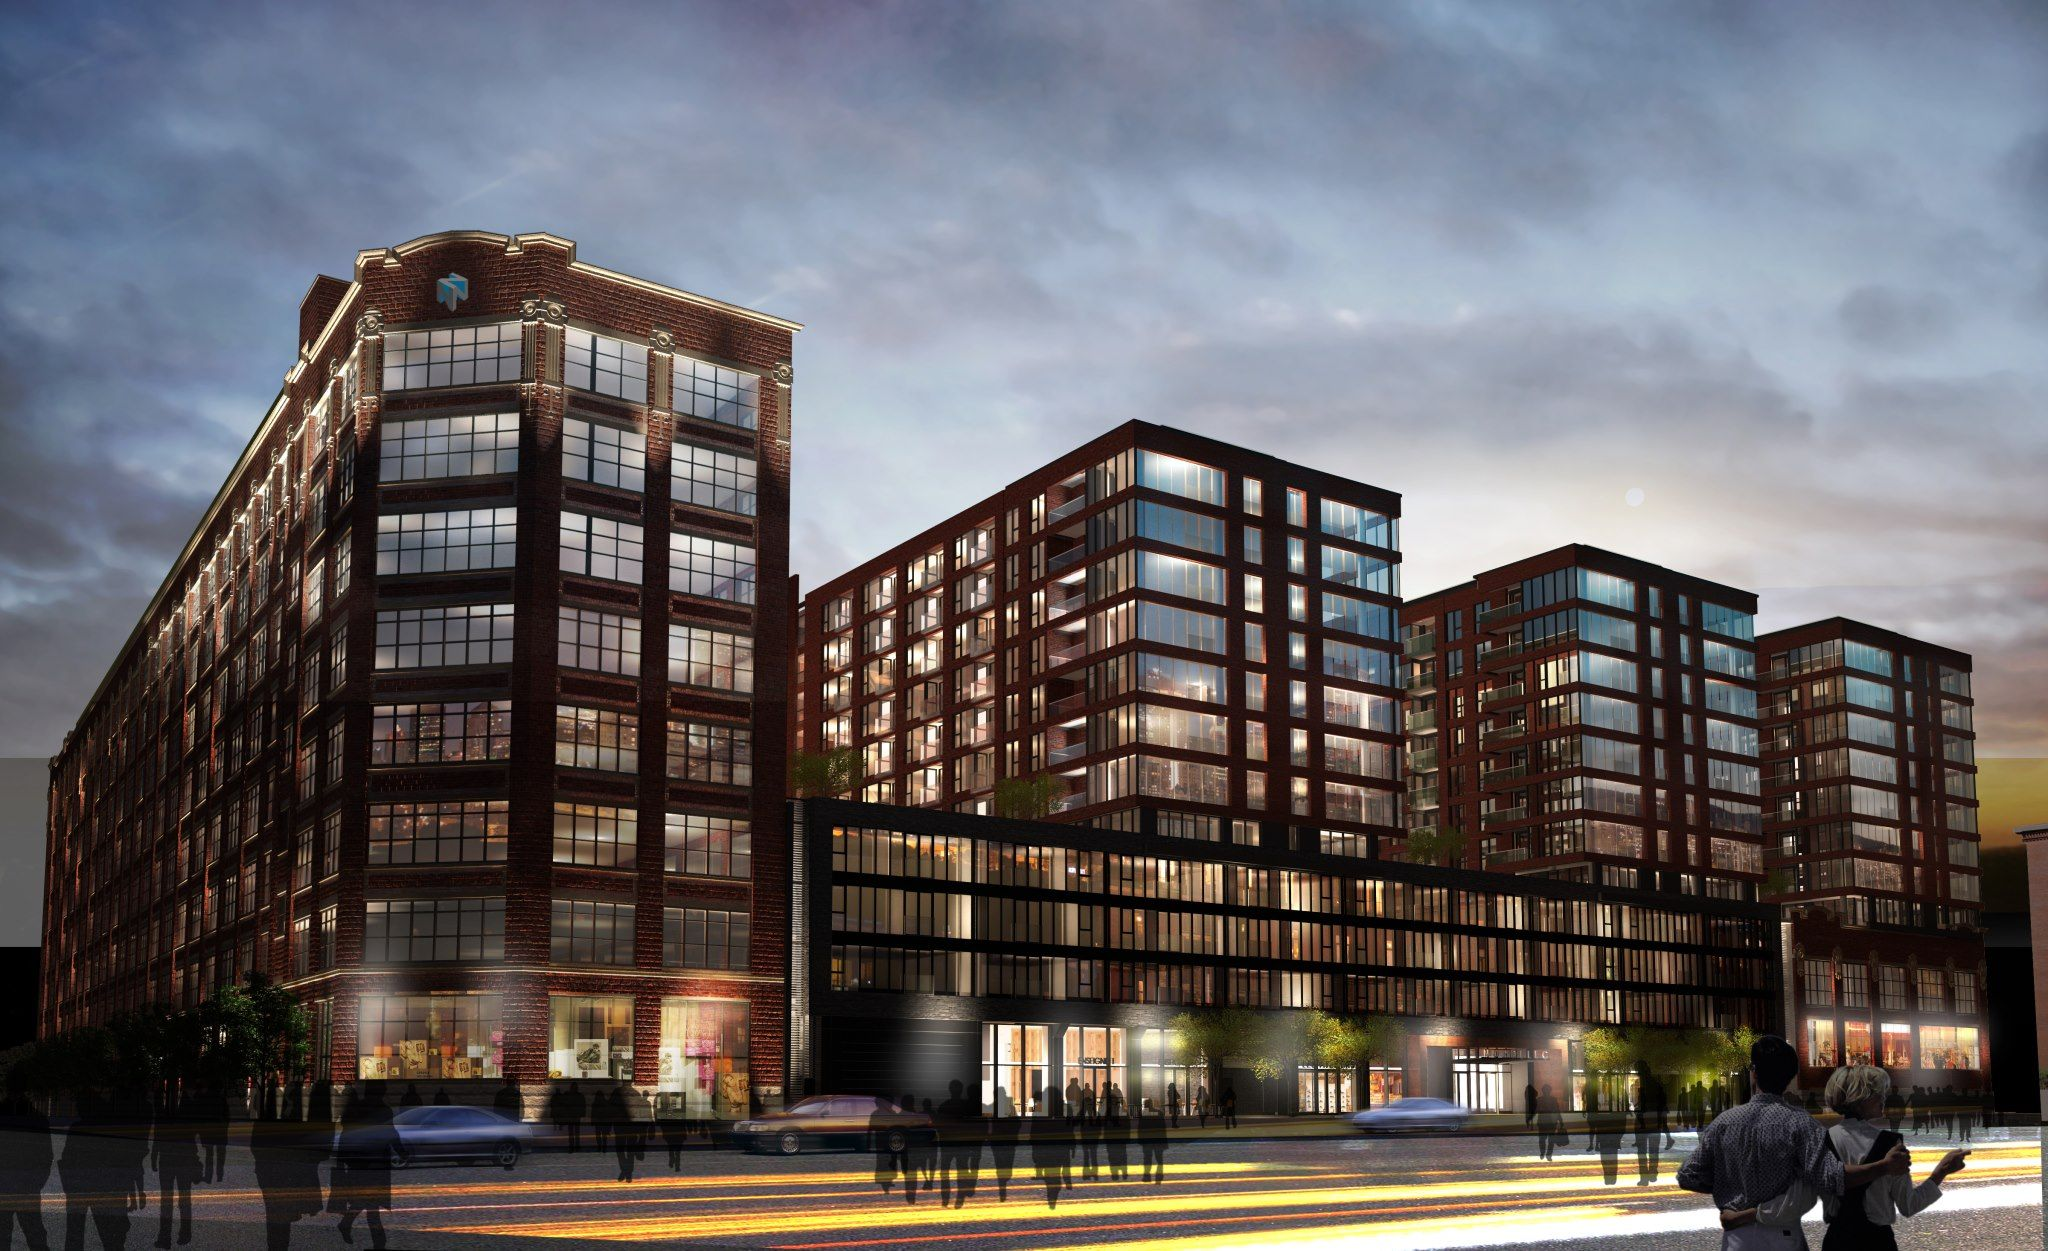 Le nordelec condos lofts with images amazing